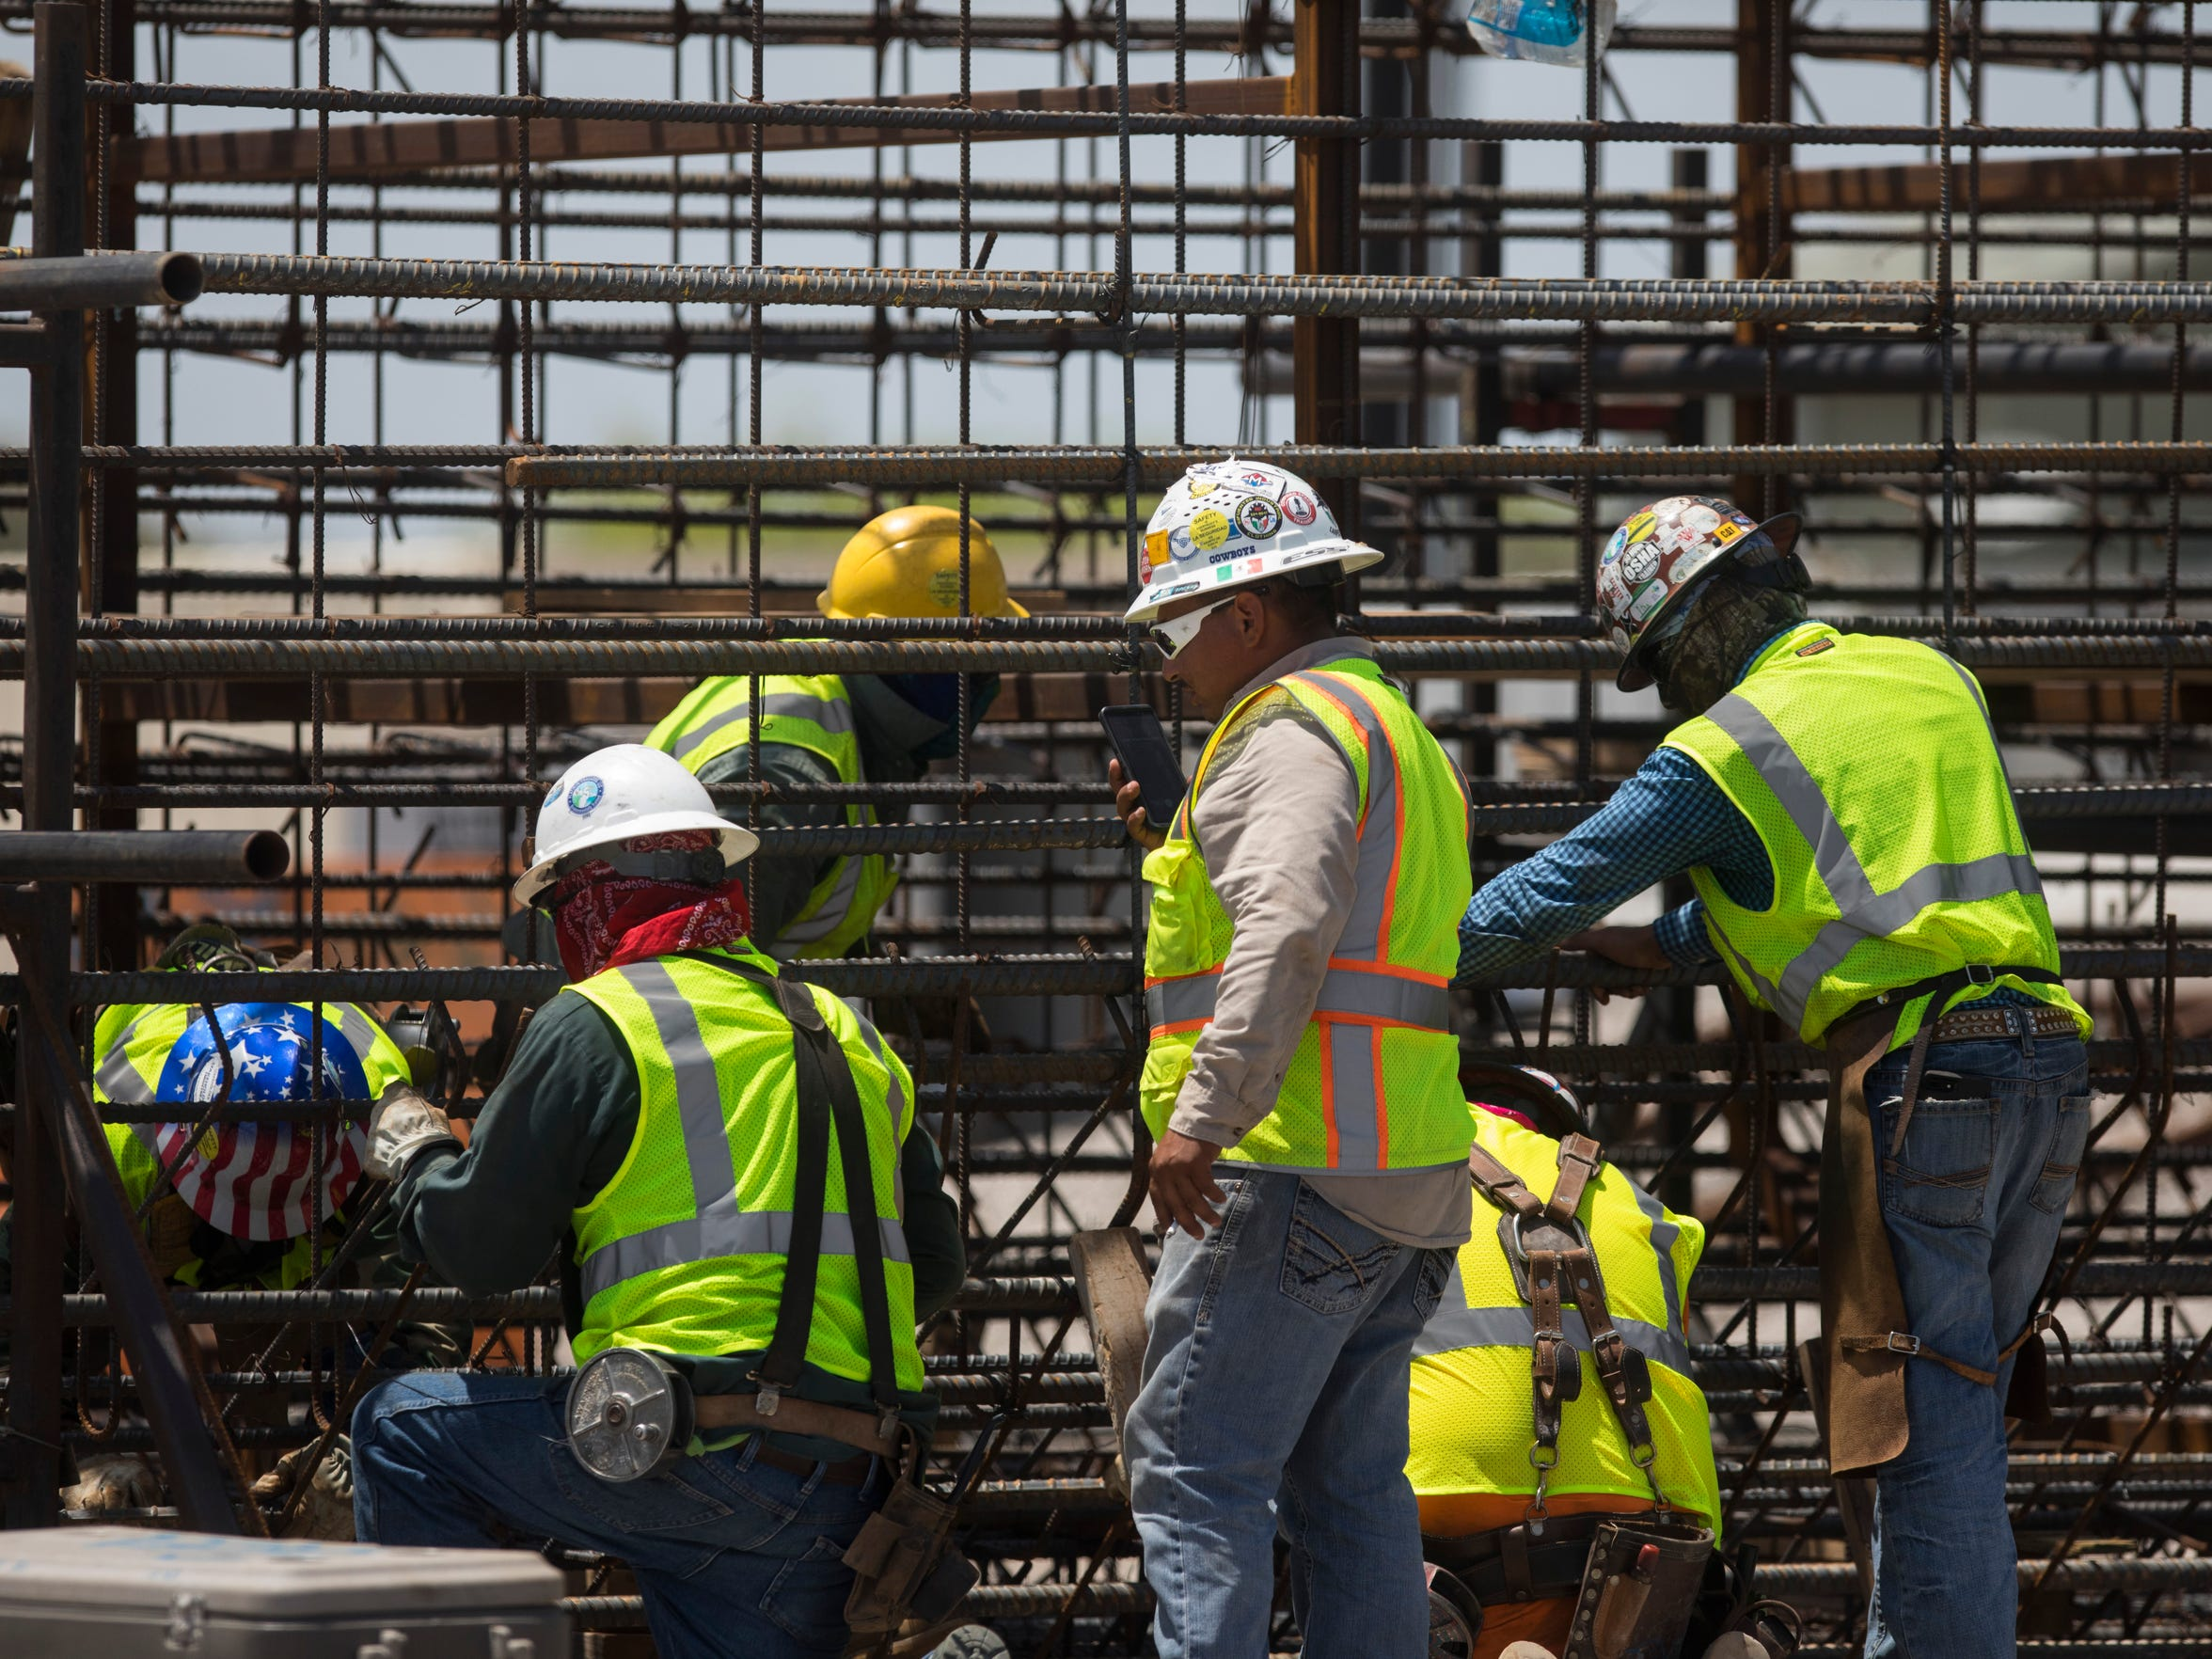 Construction crews work on the new Harbor Bridge project